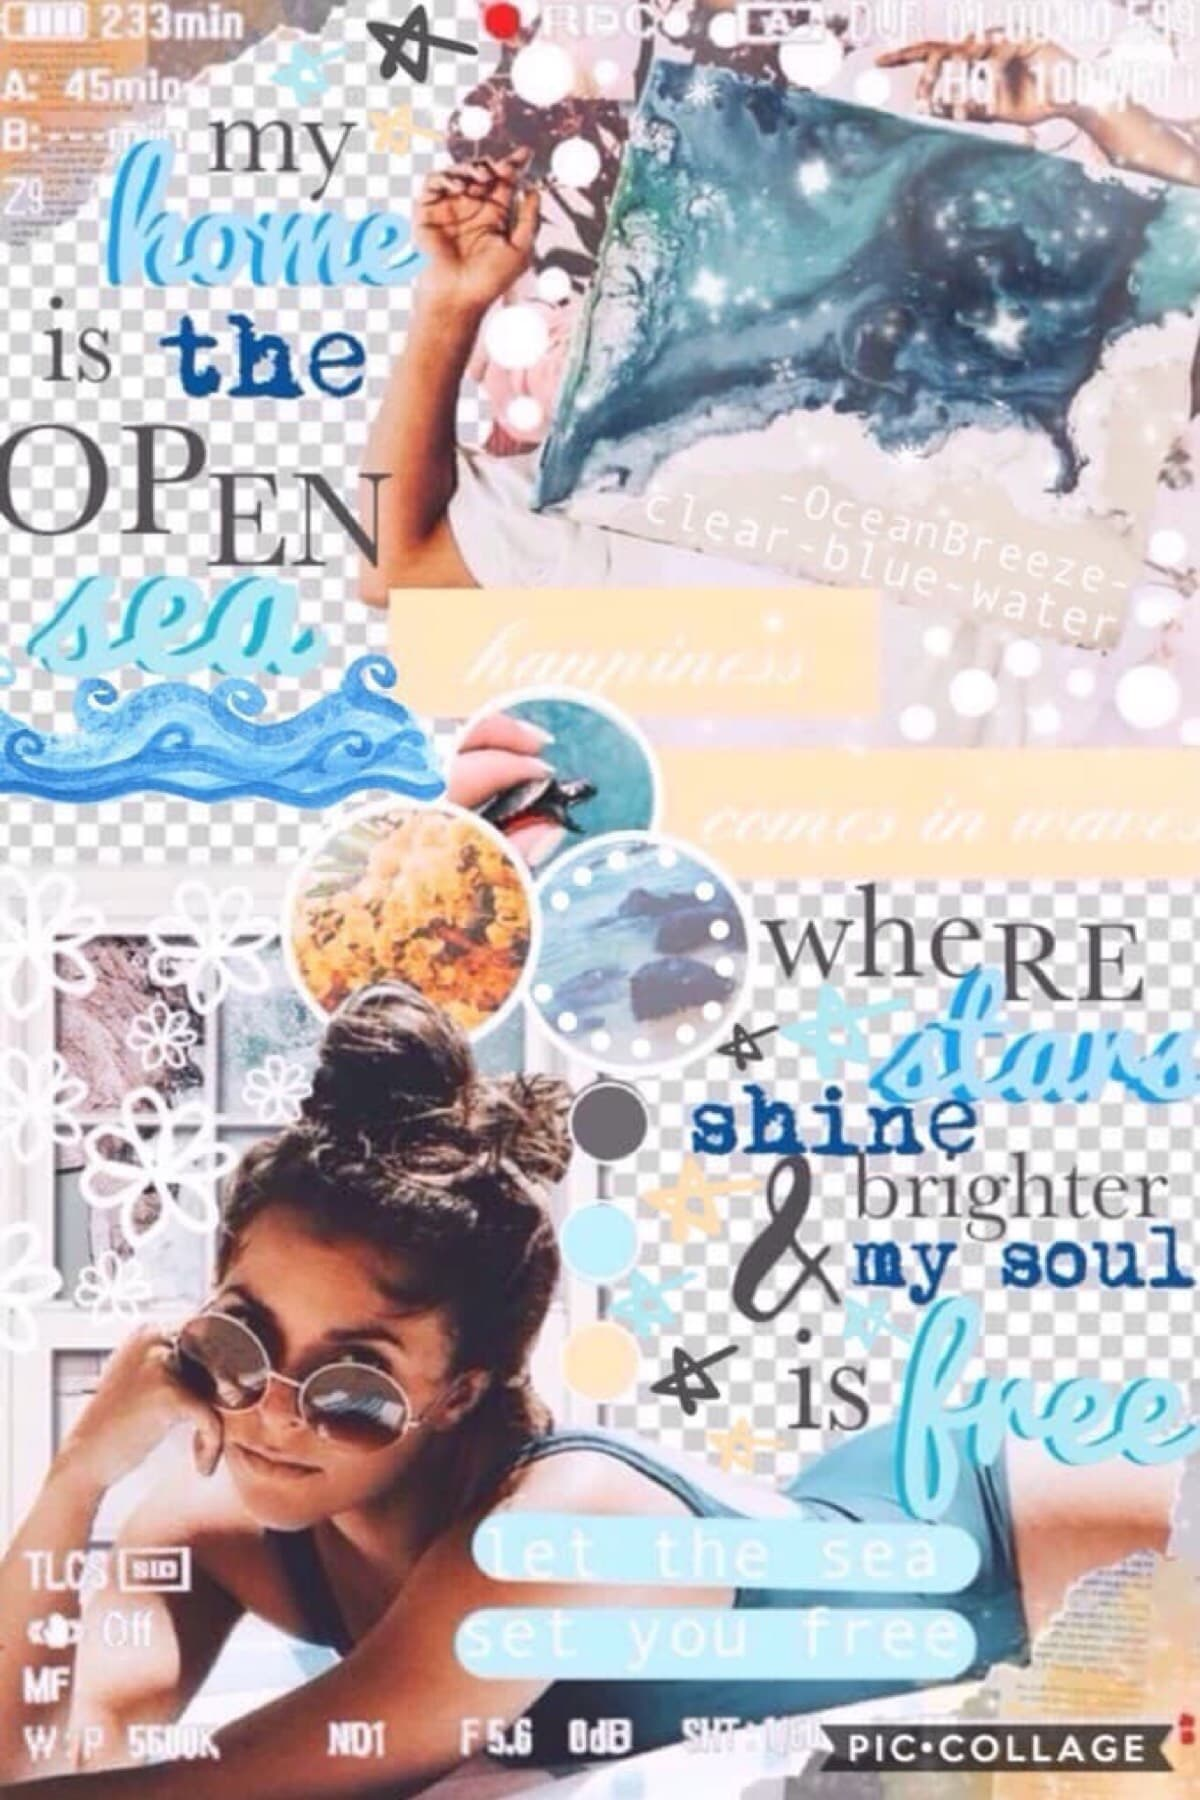 """My home is the open sea where stars shine brighter & my souls is free."" Collab with the gorgeous Sarah clear-blue-water. She did the stunning background and I did the text! Thanks all for the support on my latest post xx Love you all xoxo"